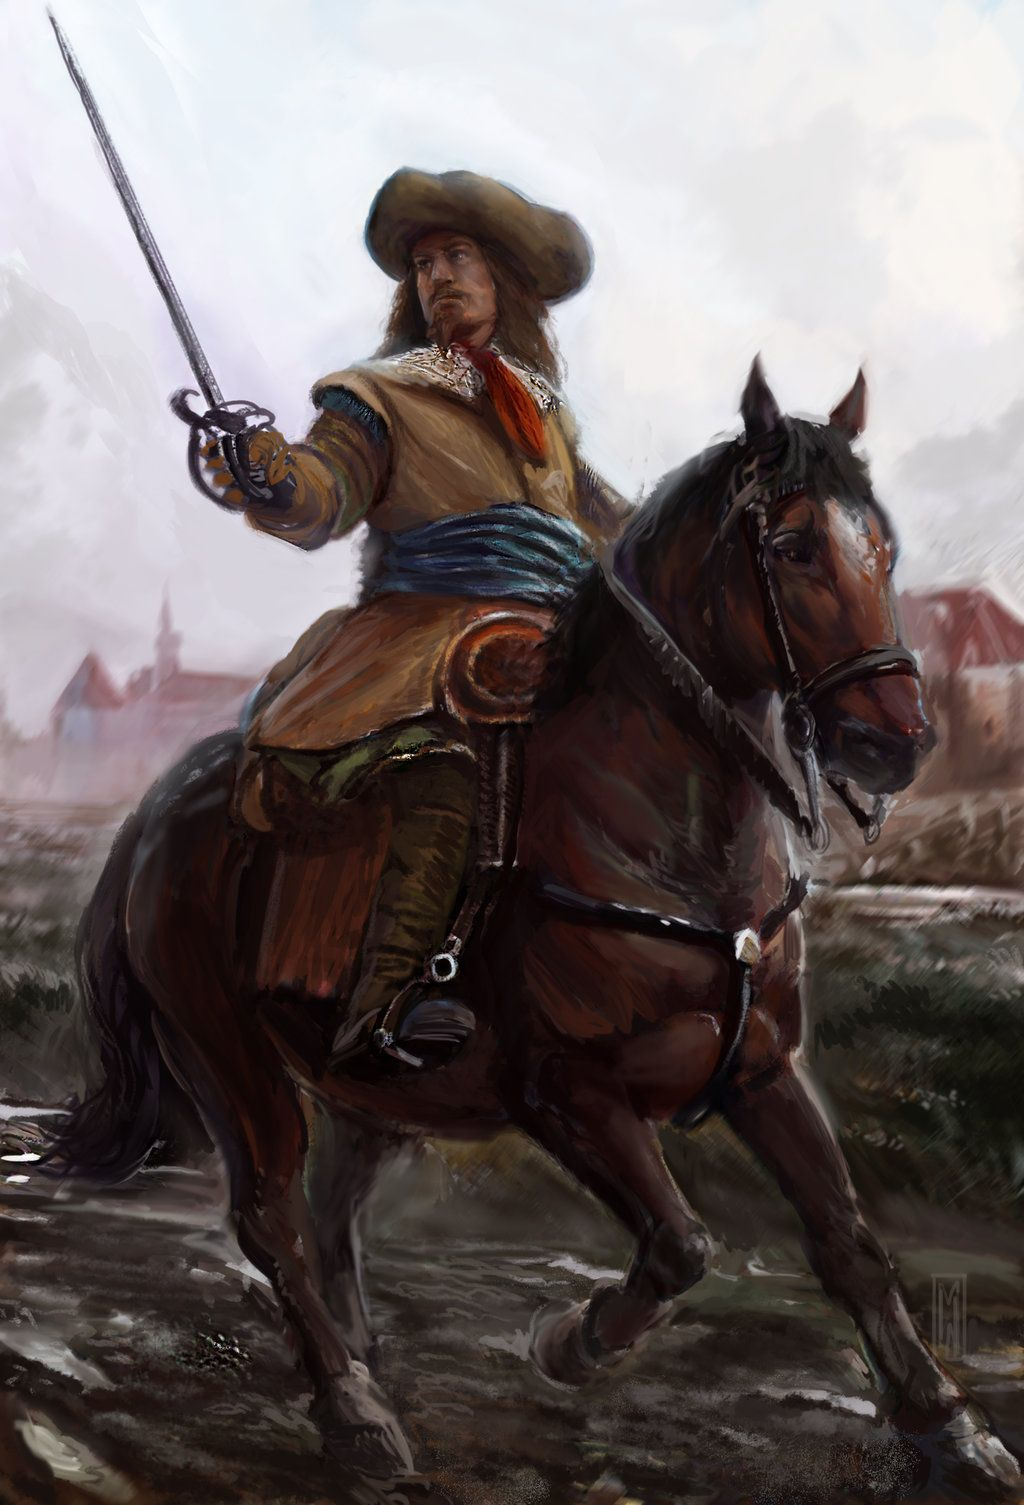 french musketeer thirty years war thirty years war art german mercenary of the thirty years war by mitchellnolte on